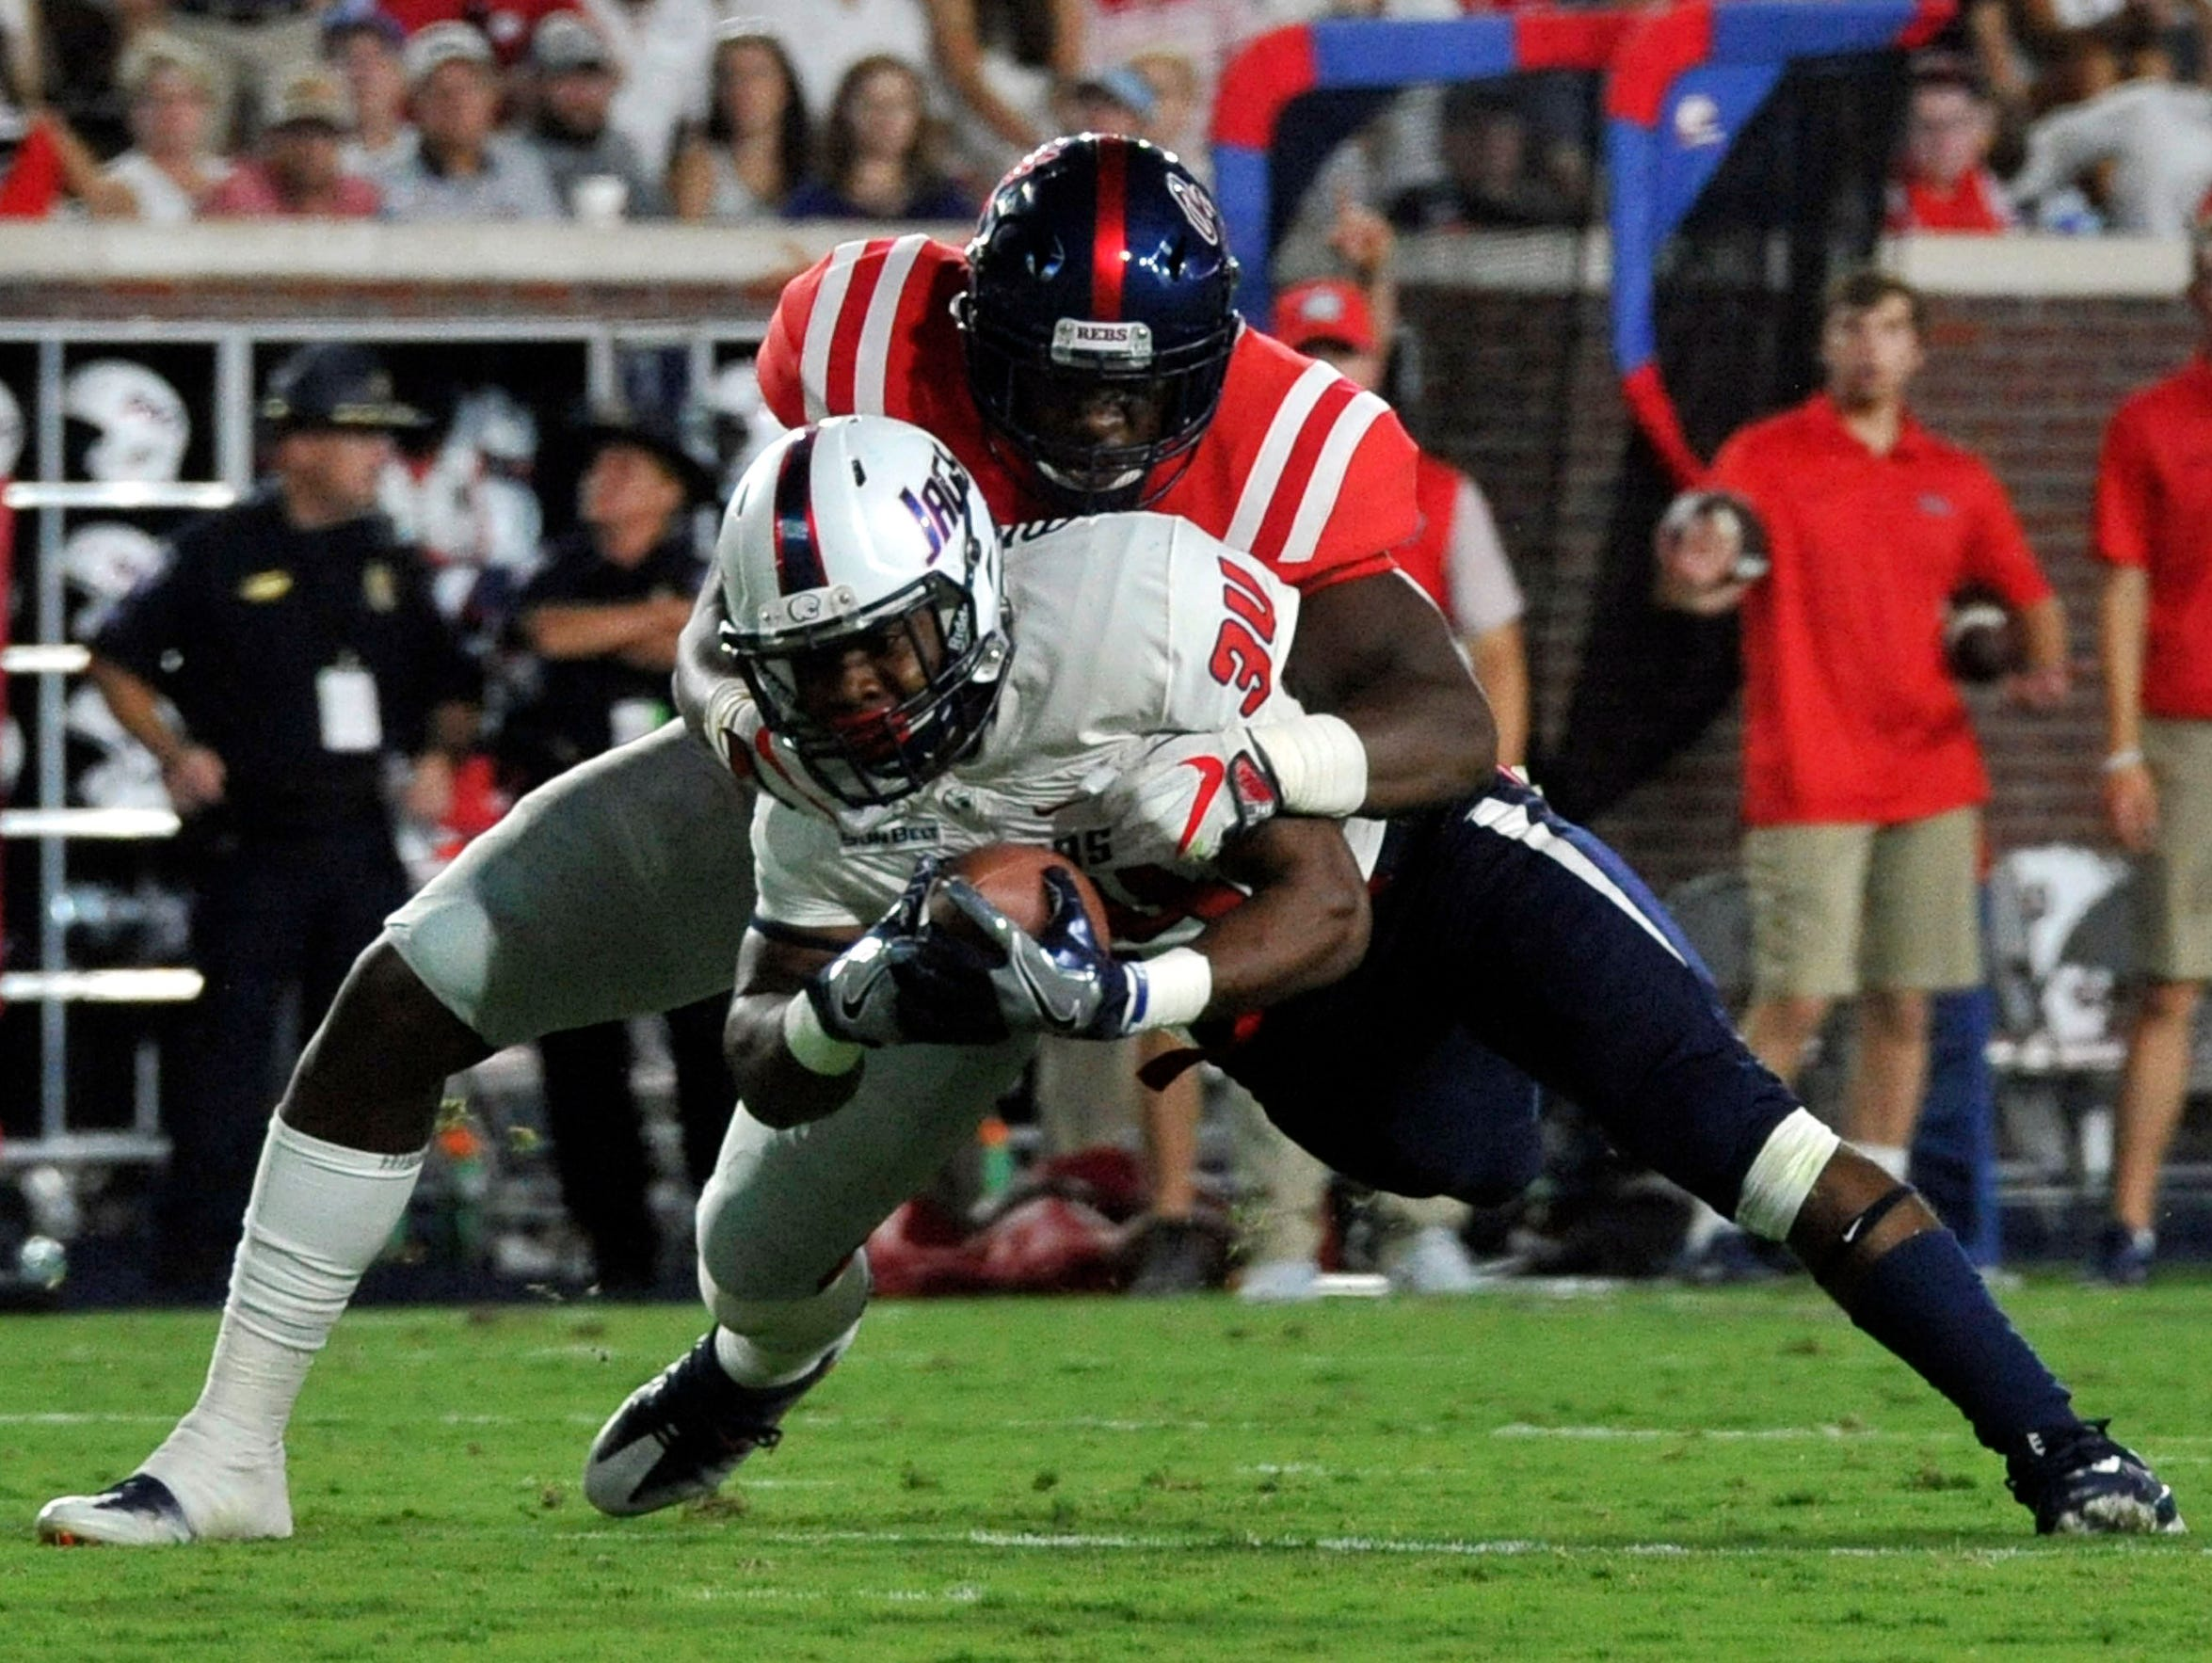 Ole Miss defensive back C.J. Moore, a former Bassfield